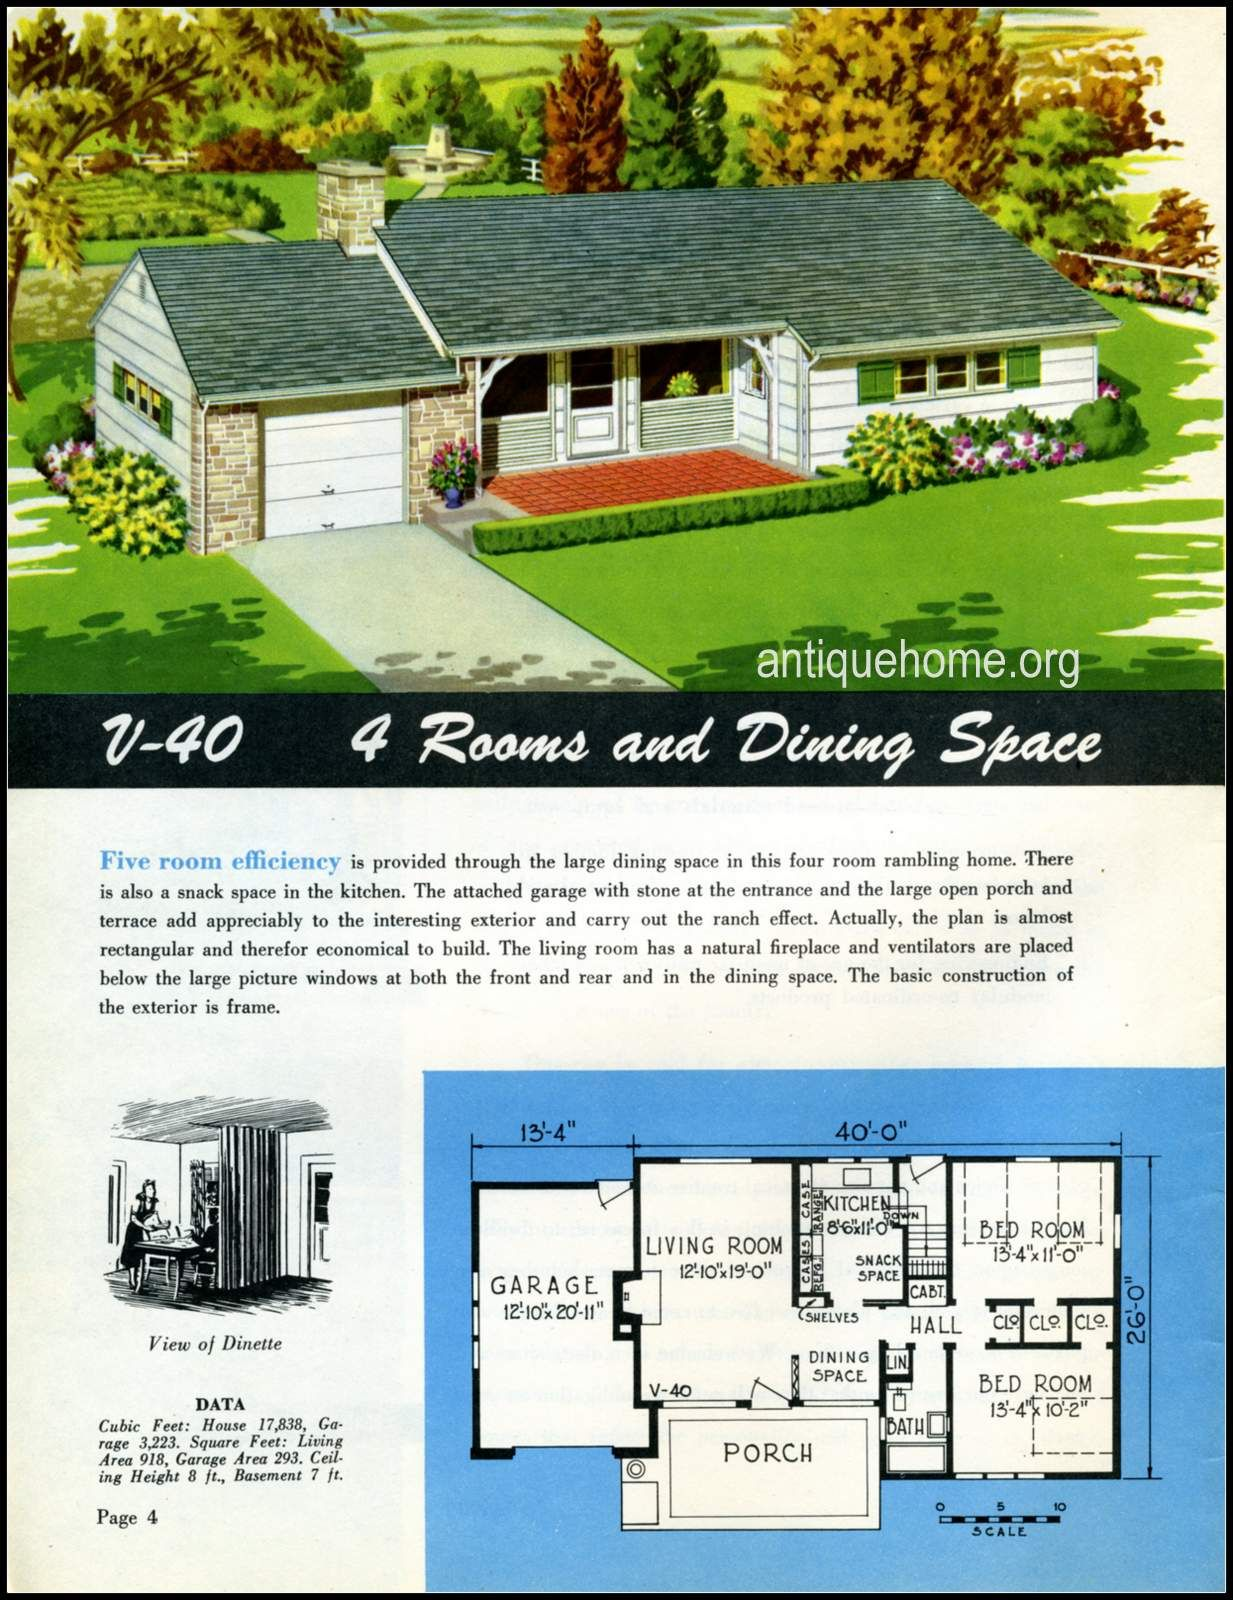 1949 Ranch Style Homes From National Plan Service And Antiquehome Org Vintage House Plans Ranch Style Homes Country Style House Plans